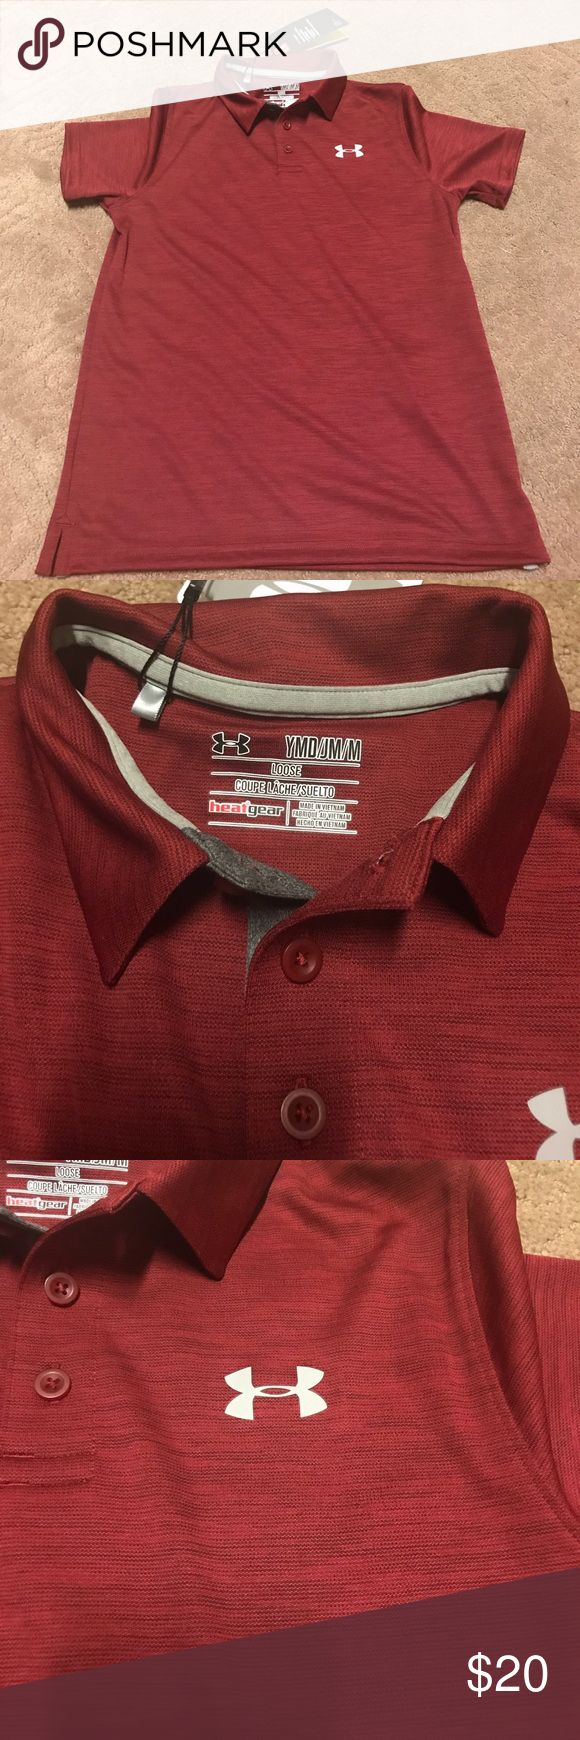 Under Armour Polo Shirt Brand New Youth Under Armour heat Gear  polo shirt Size Medium (loose fit See size tag) color is Burgundy Logo is Gray. Under Armour Shirts & Tops Polos